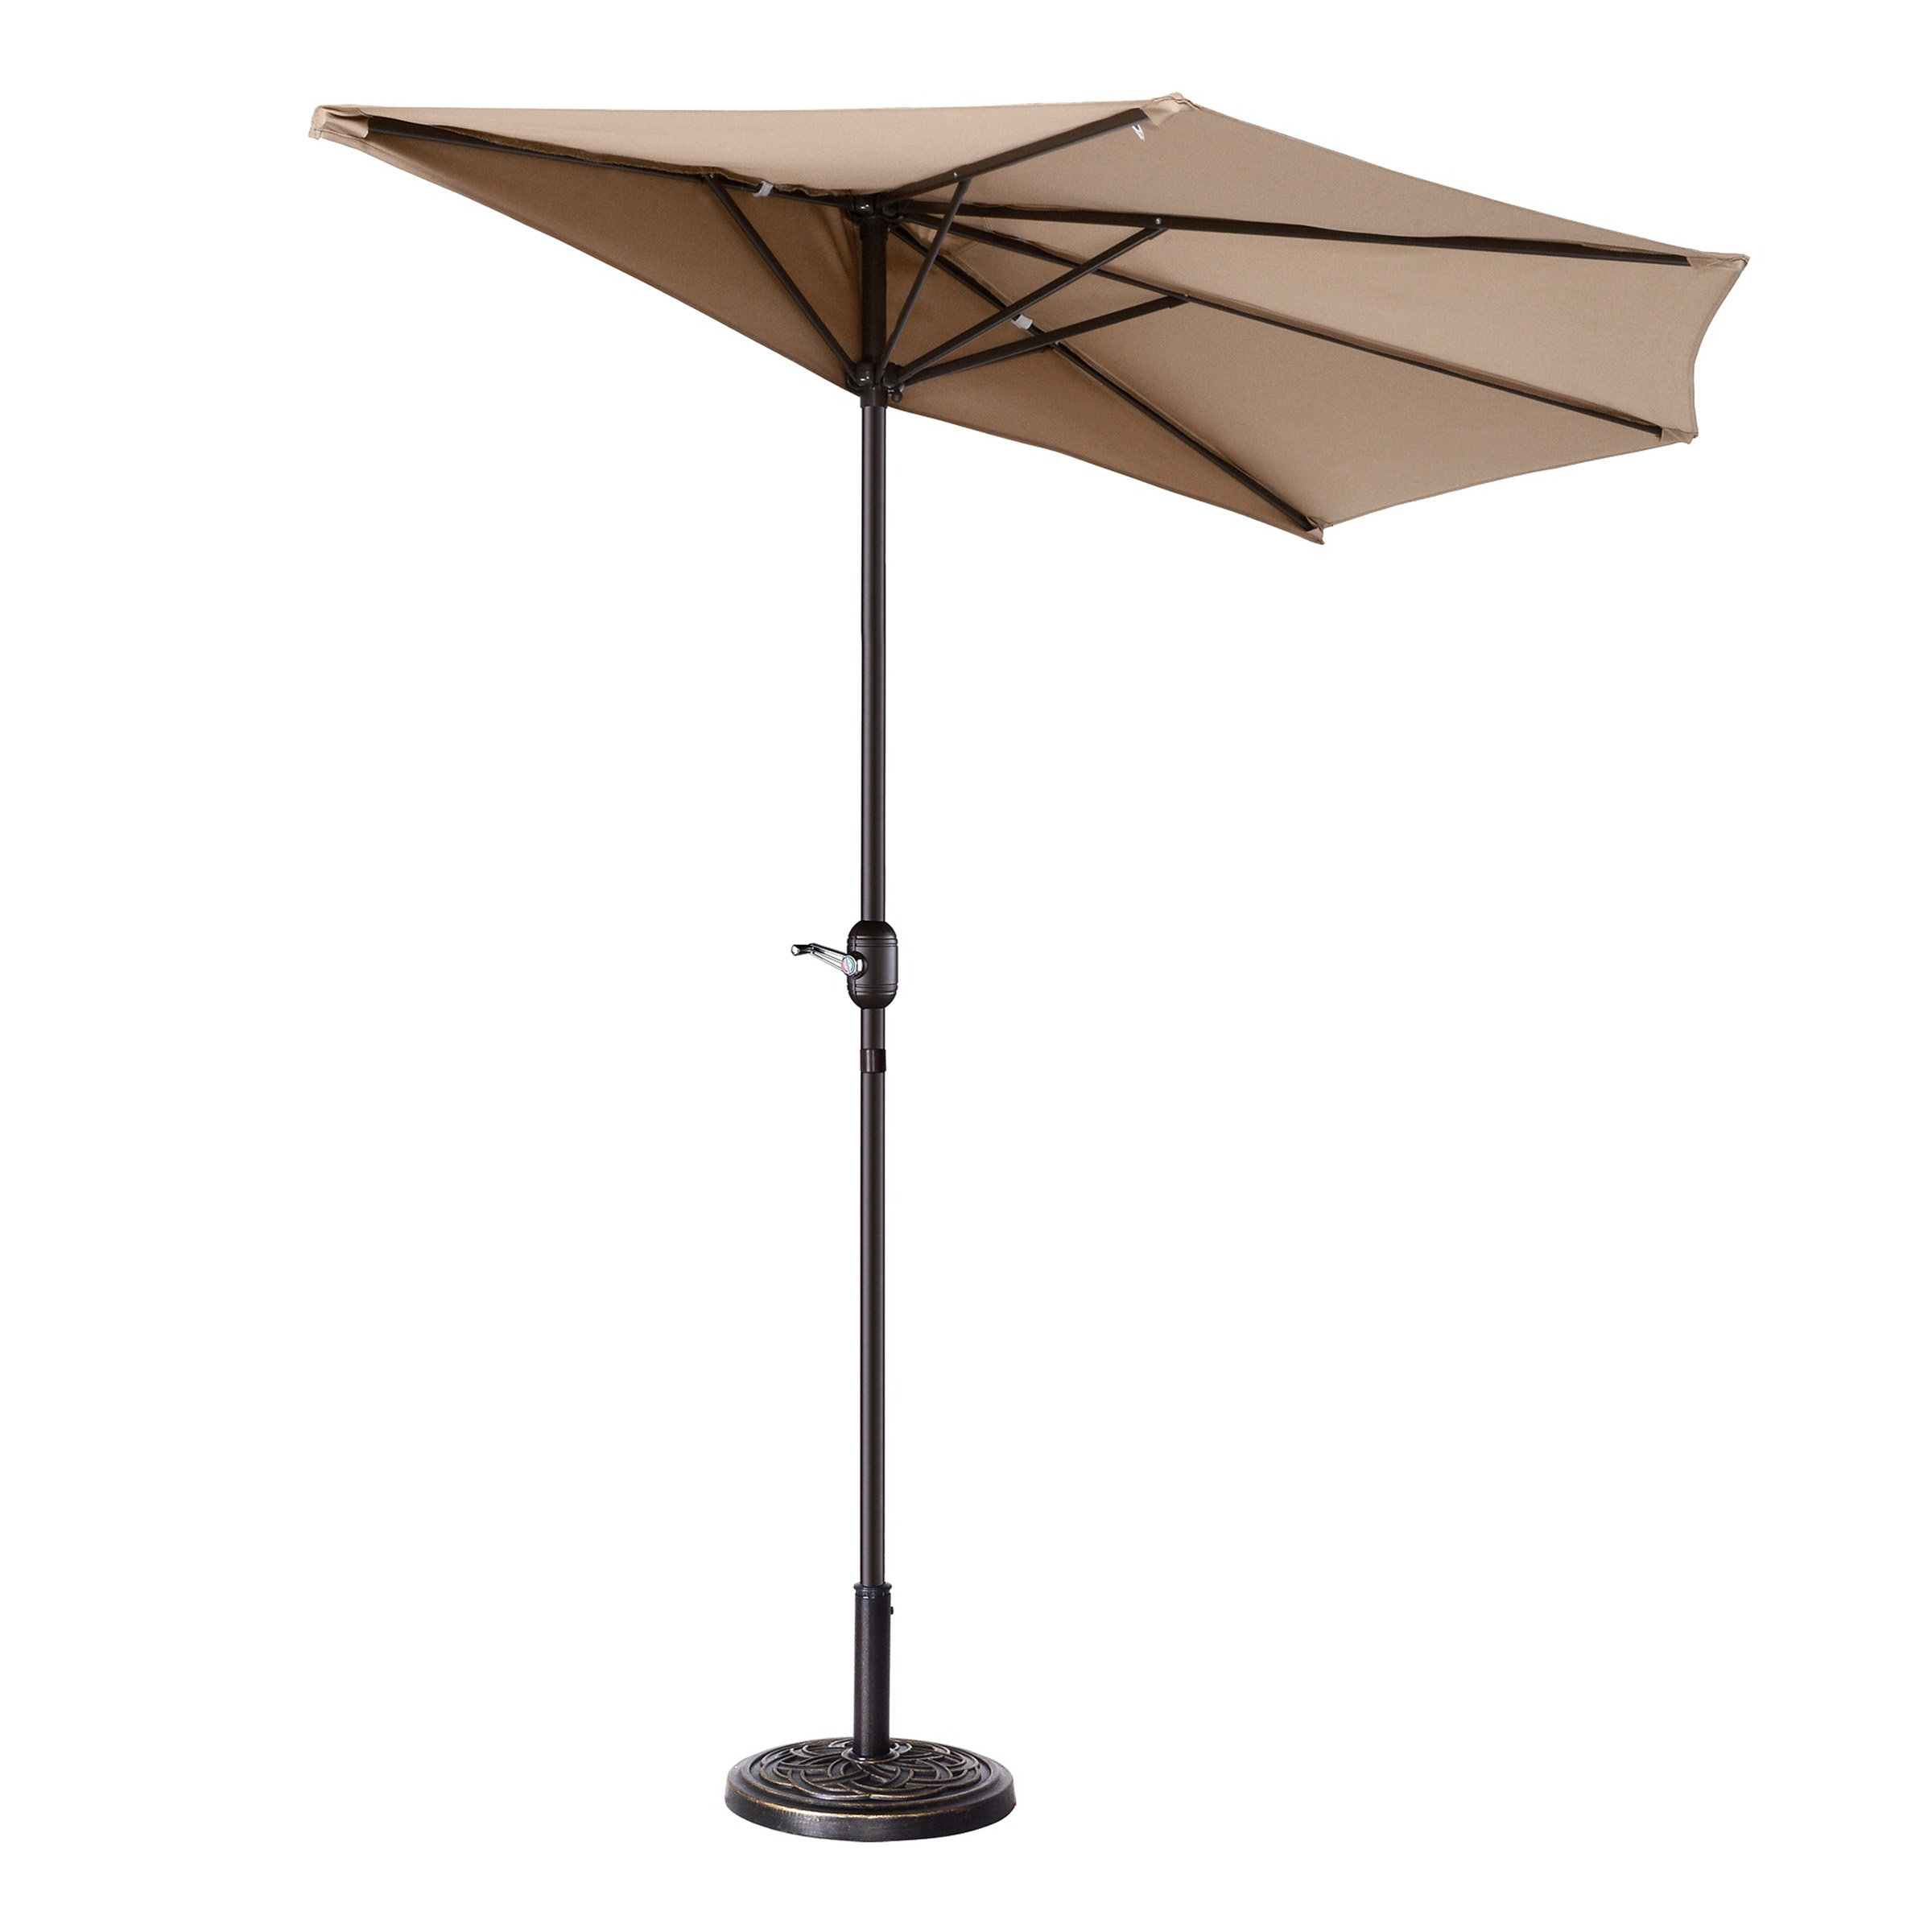 Iyanna Market Umbrellas With Regard To Best And Newest Colburn Half 9' Market Umbrella (View 11 of 20)